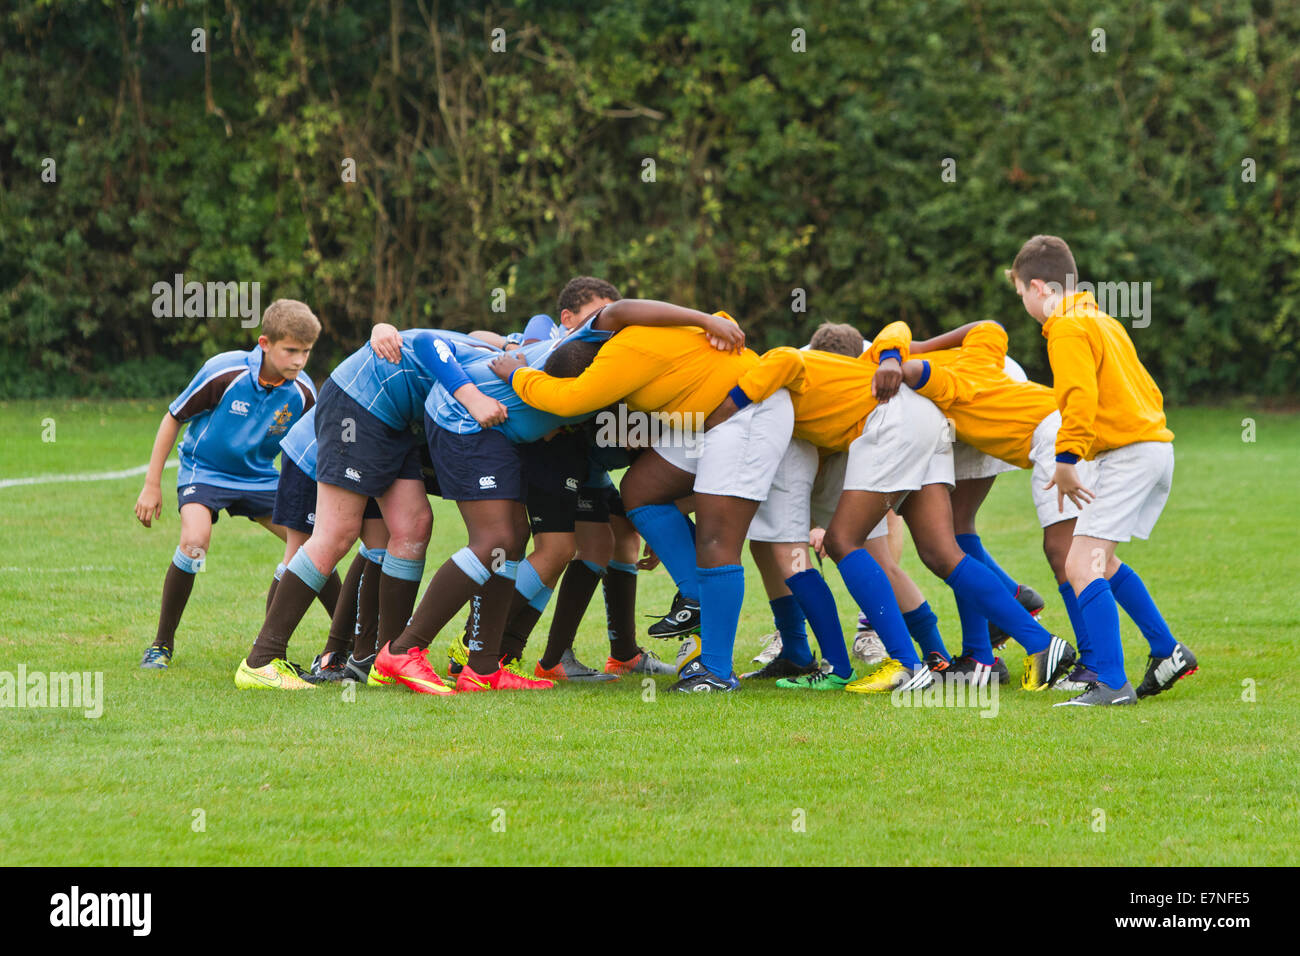 school children playing rugby in the United Kimgdom - Stock Image